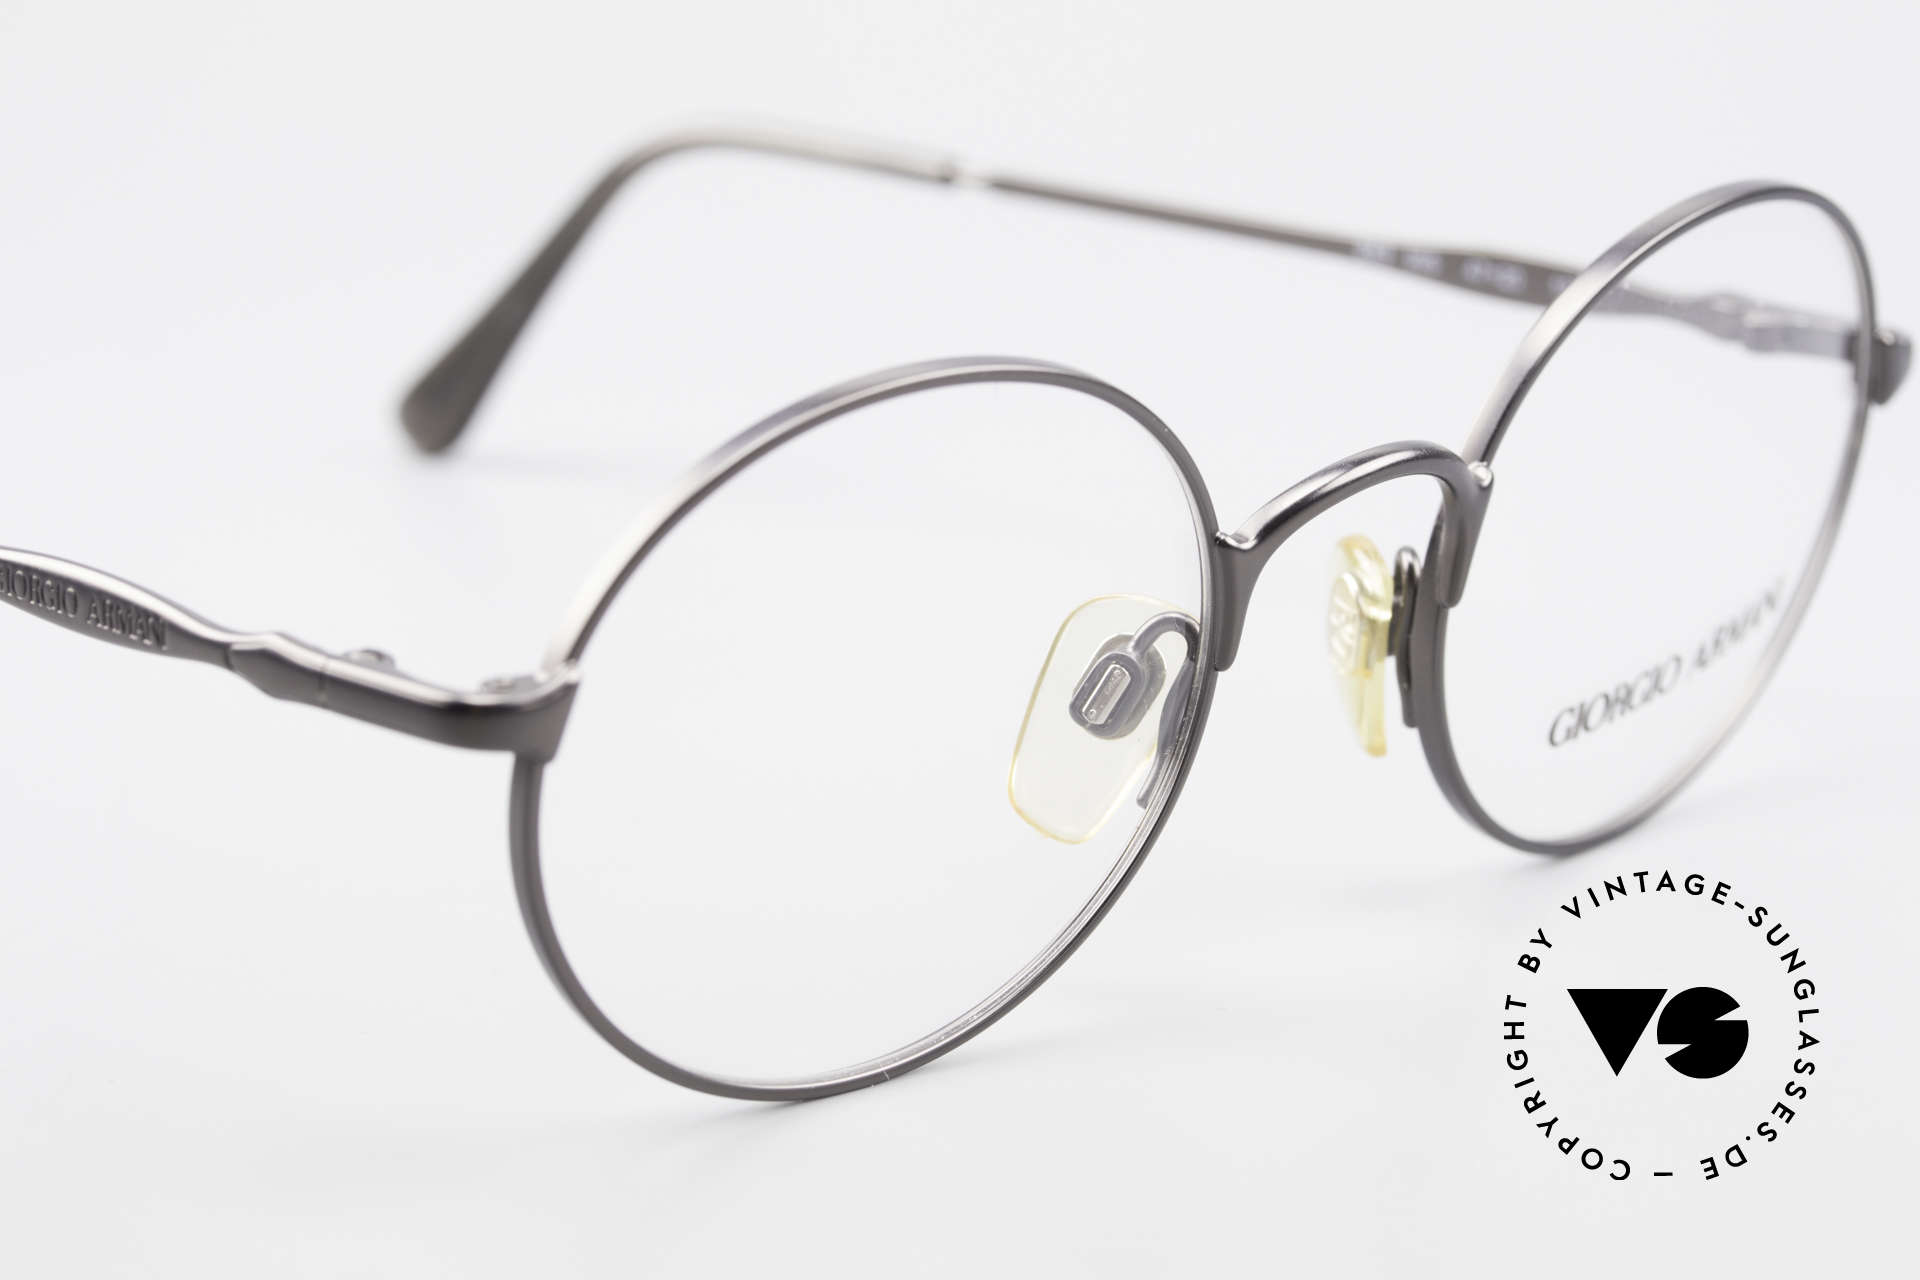 Giorgio Armani 243 Small Round Oval Glasses 90s, NO recent collection, but a 25 years old ORIGINAL, Made for Men and Women